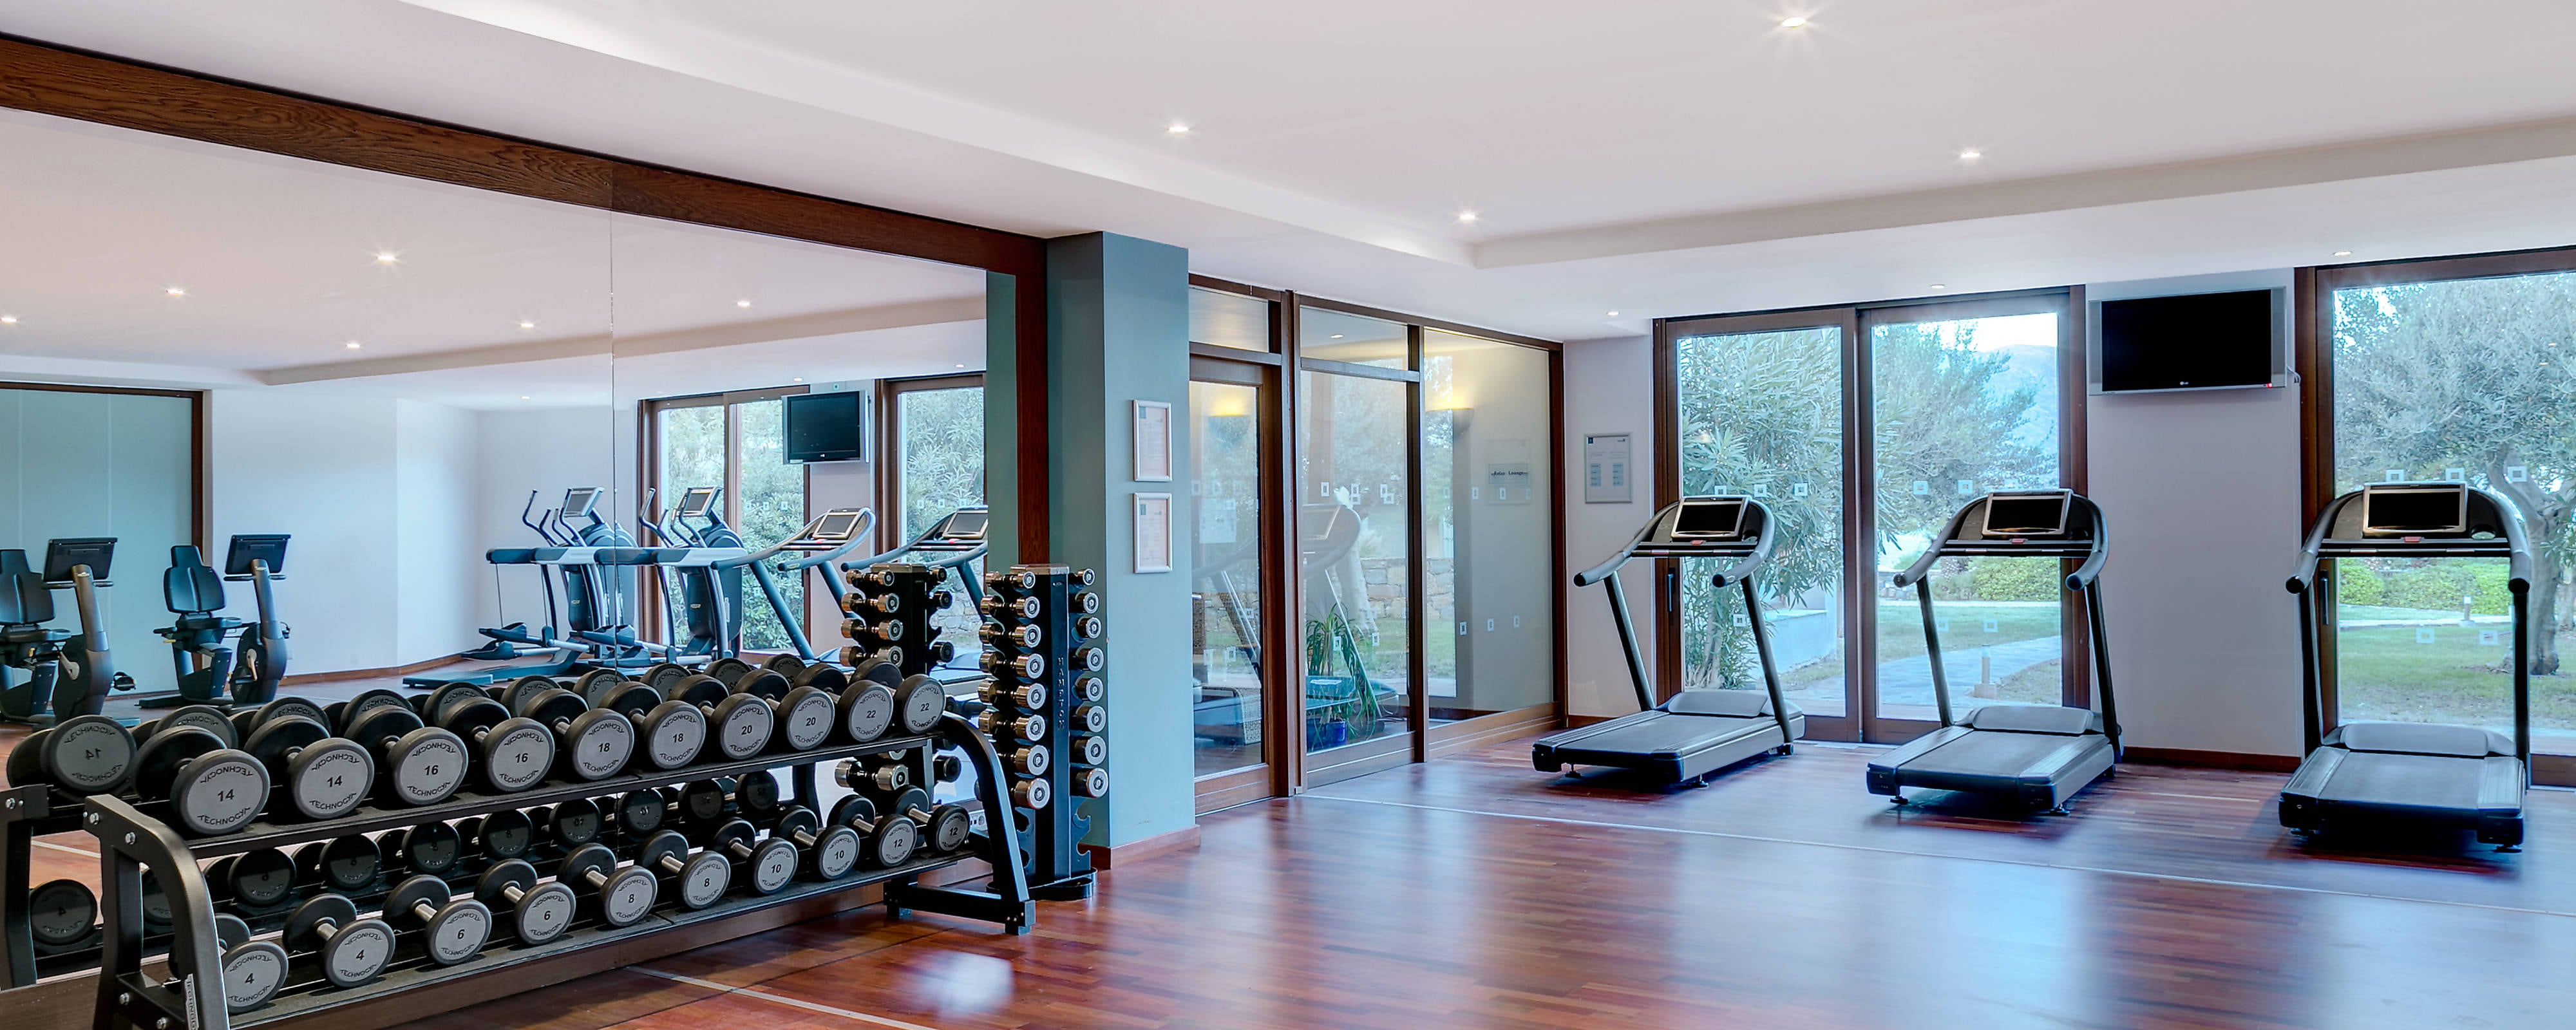 Fitness Recreation Services Blue Palace A Luxury